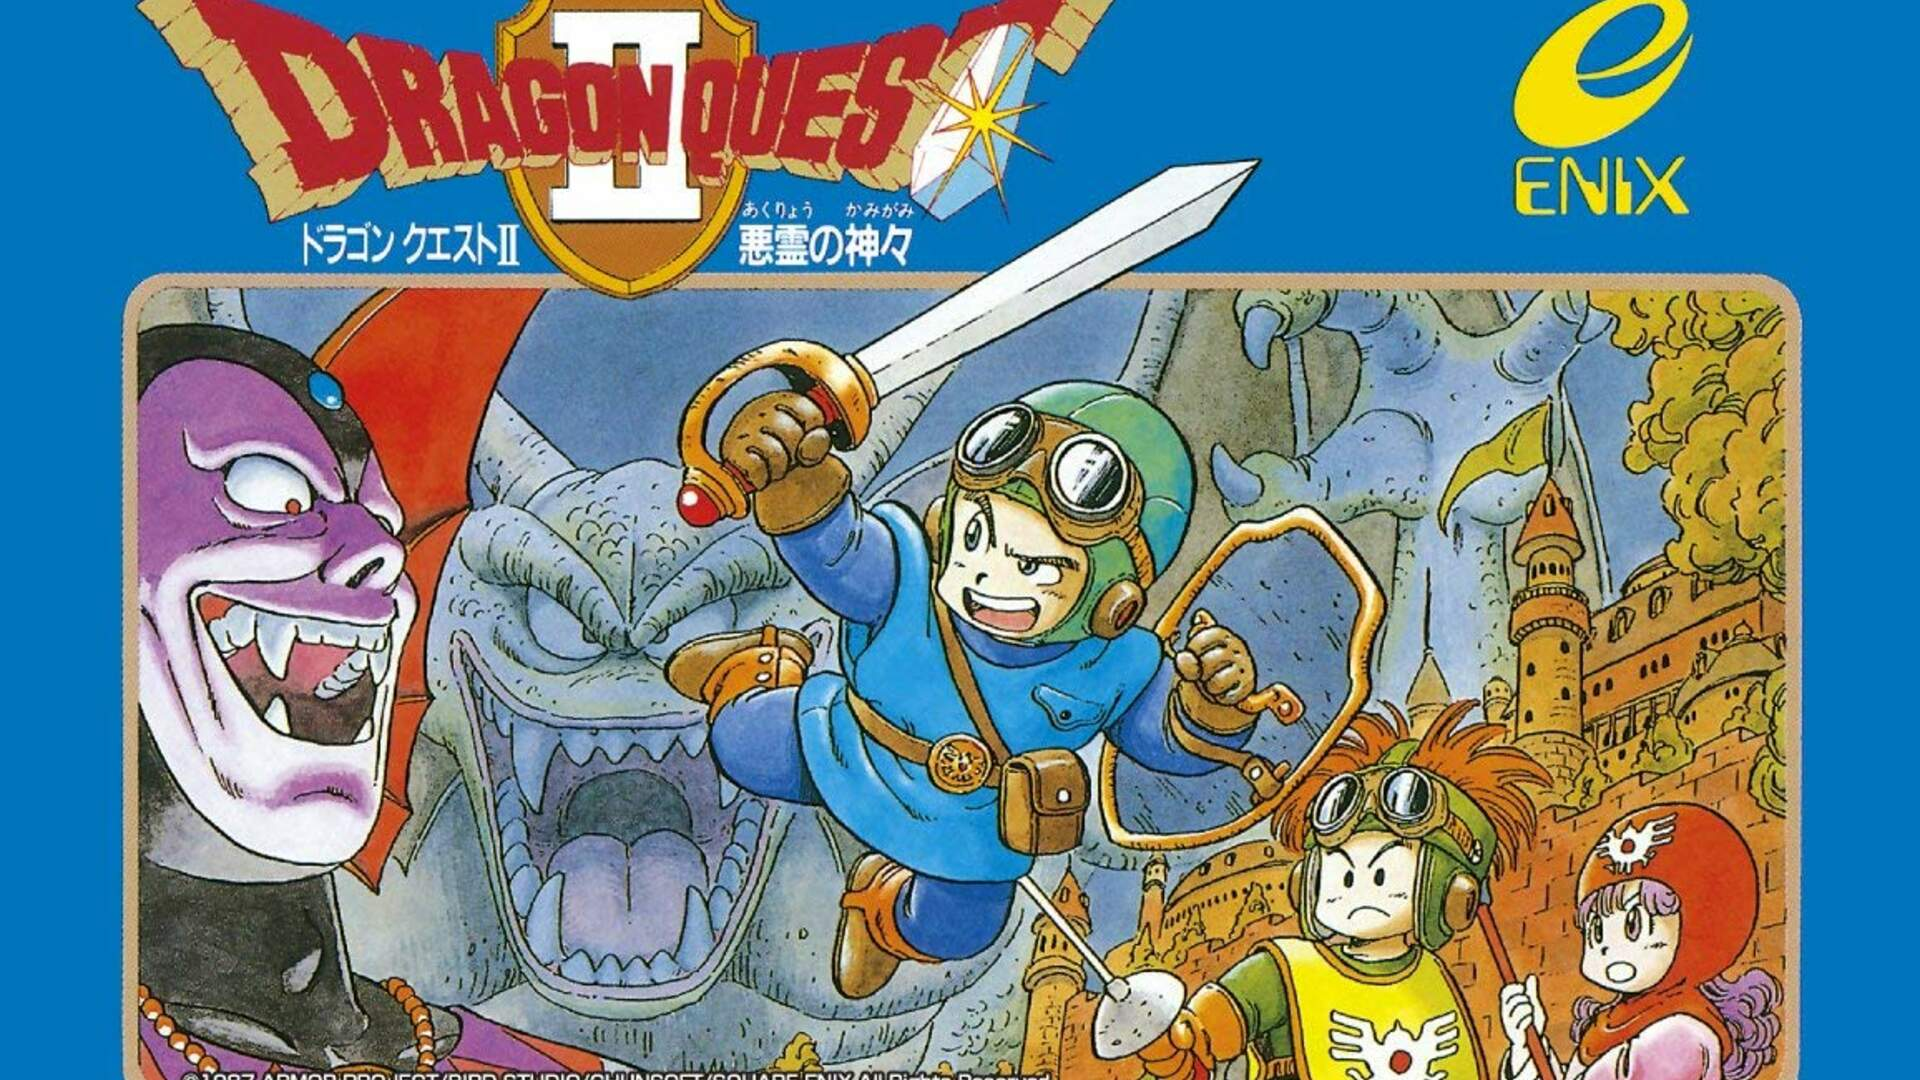 Yuji Horii Remembers the Difficult Road to Liberating RPGs from Costly Computers With Dragon Quest